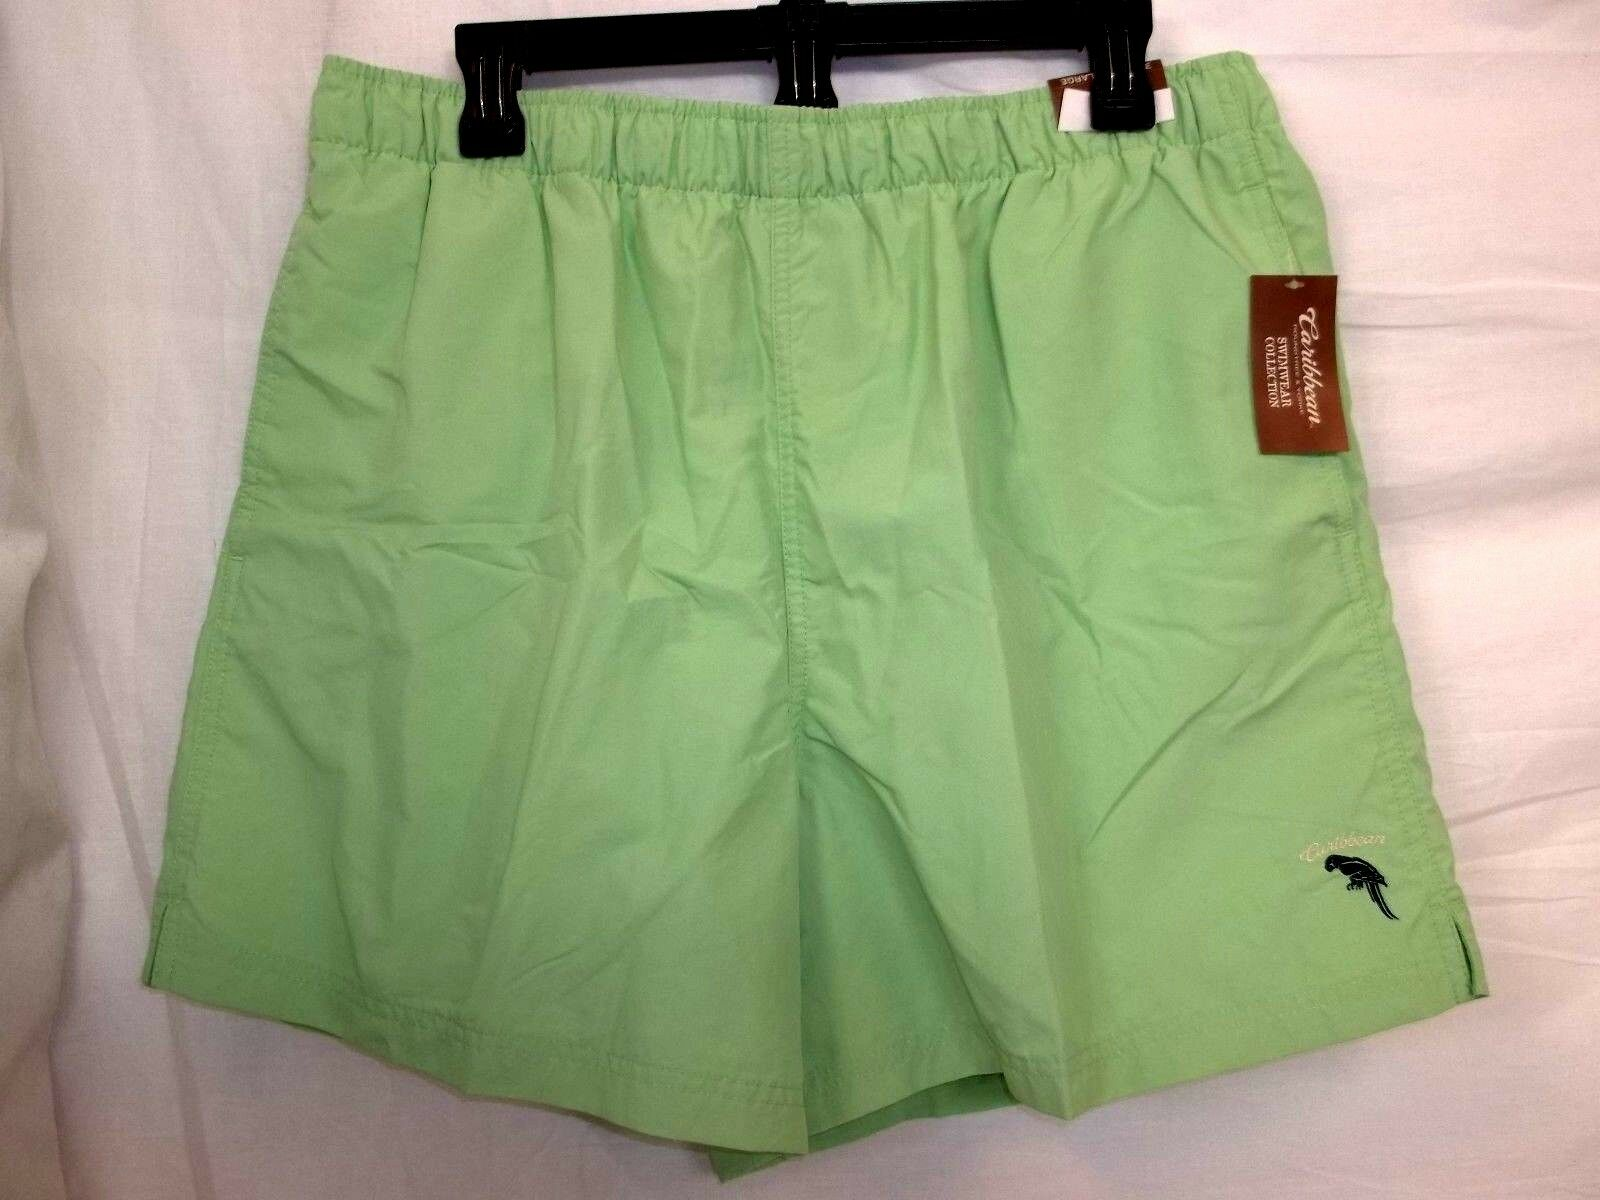 Caribbean Roundtree & Yorke Size L Large Mint Green New Mens Swimming Trunks